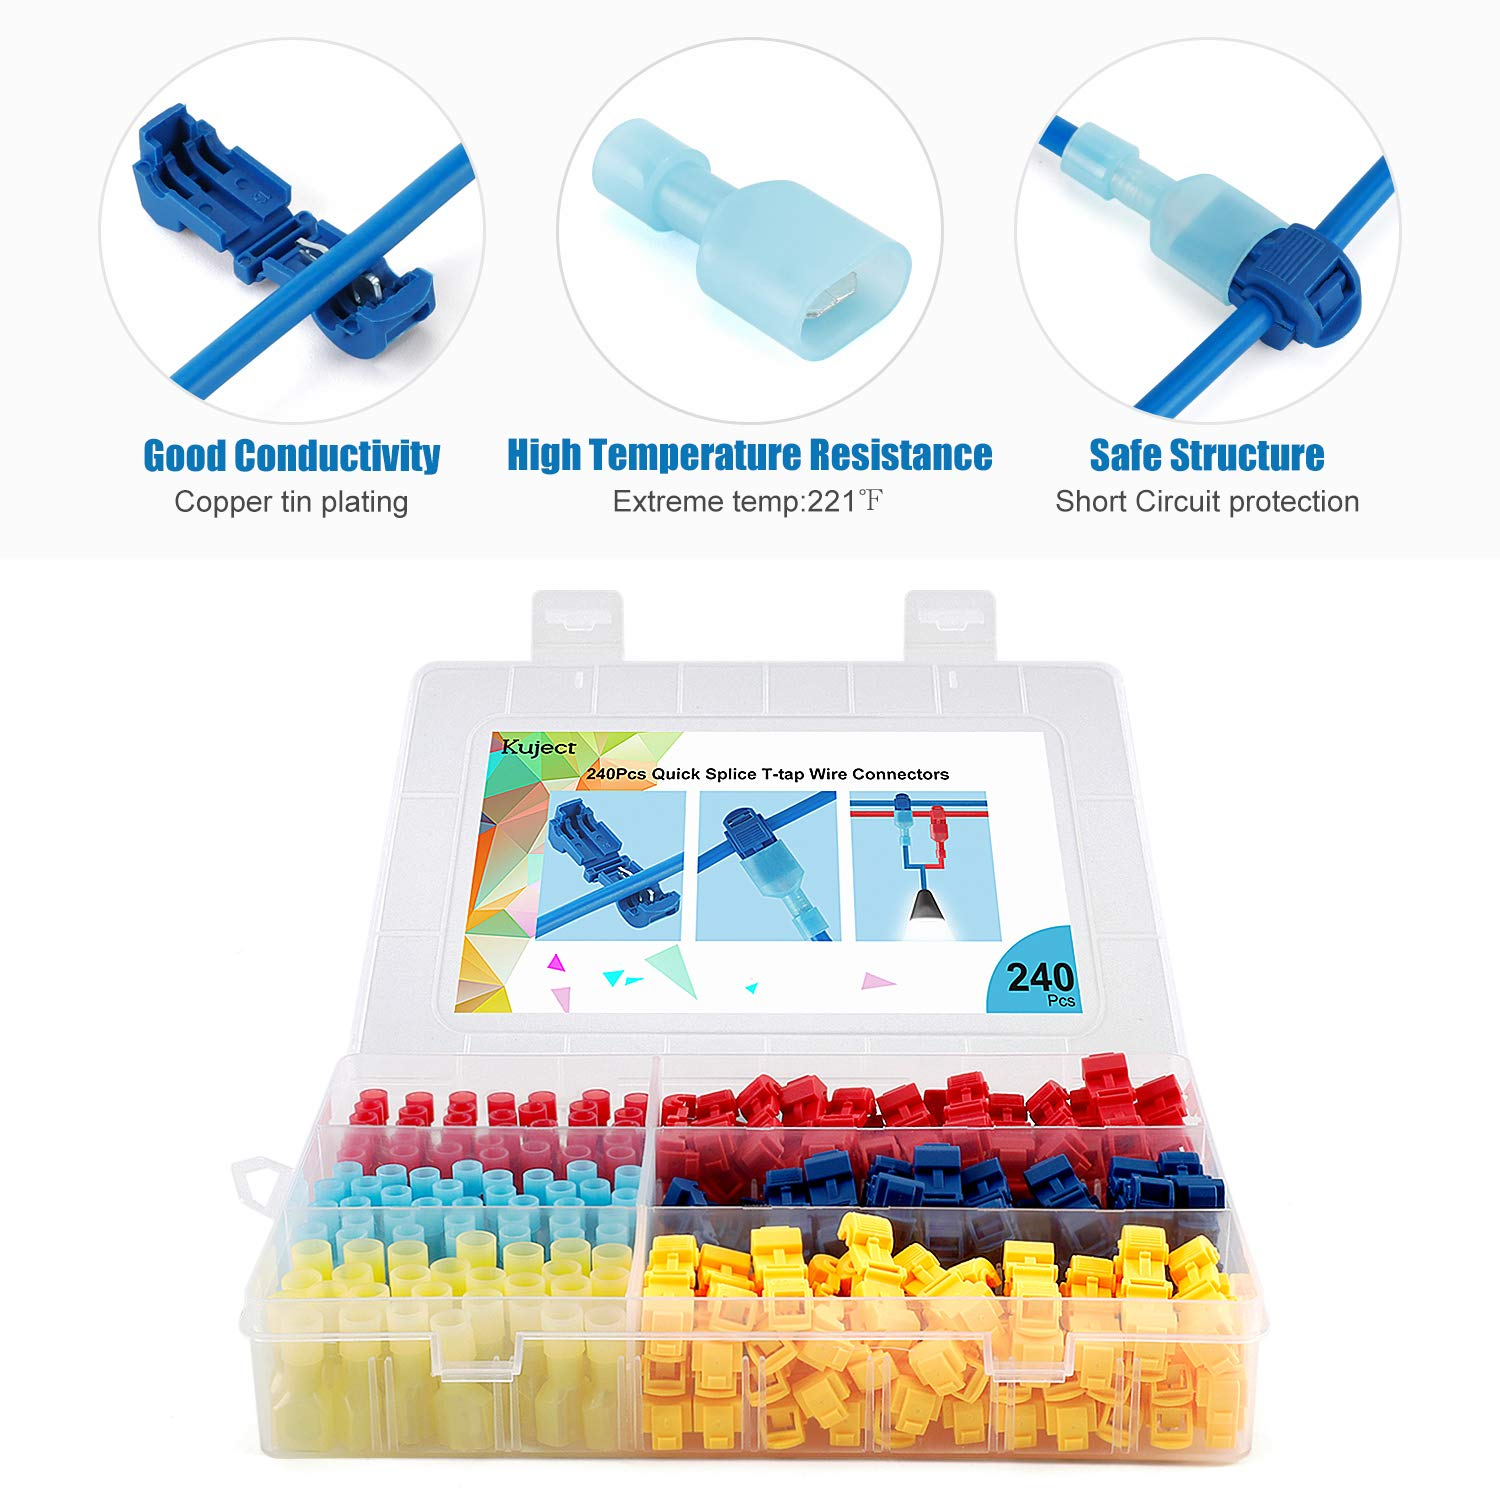 Kuject 240Pcs T Tap Wire Connectors, 24-10 AWG Quick Splice Electric Wire Terminals, Self-Stripping Insulated Male Quick Disconnect Spade Terminals Assortment Kit with Case